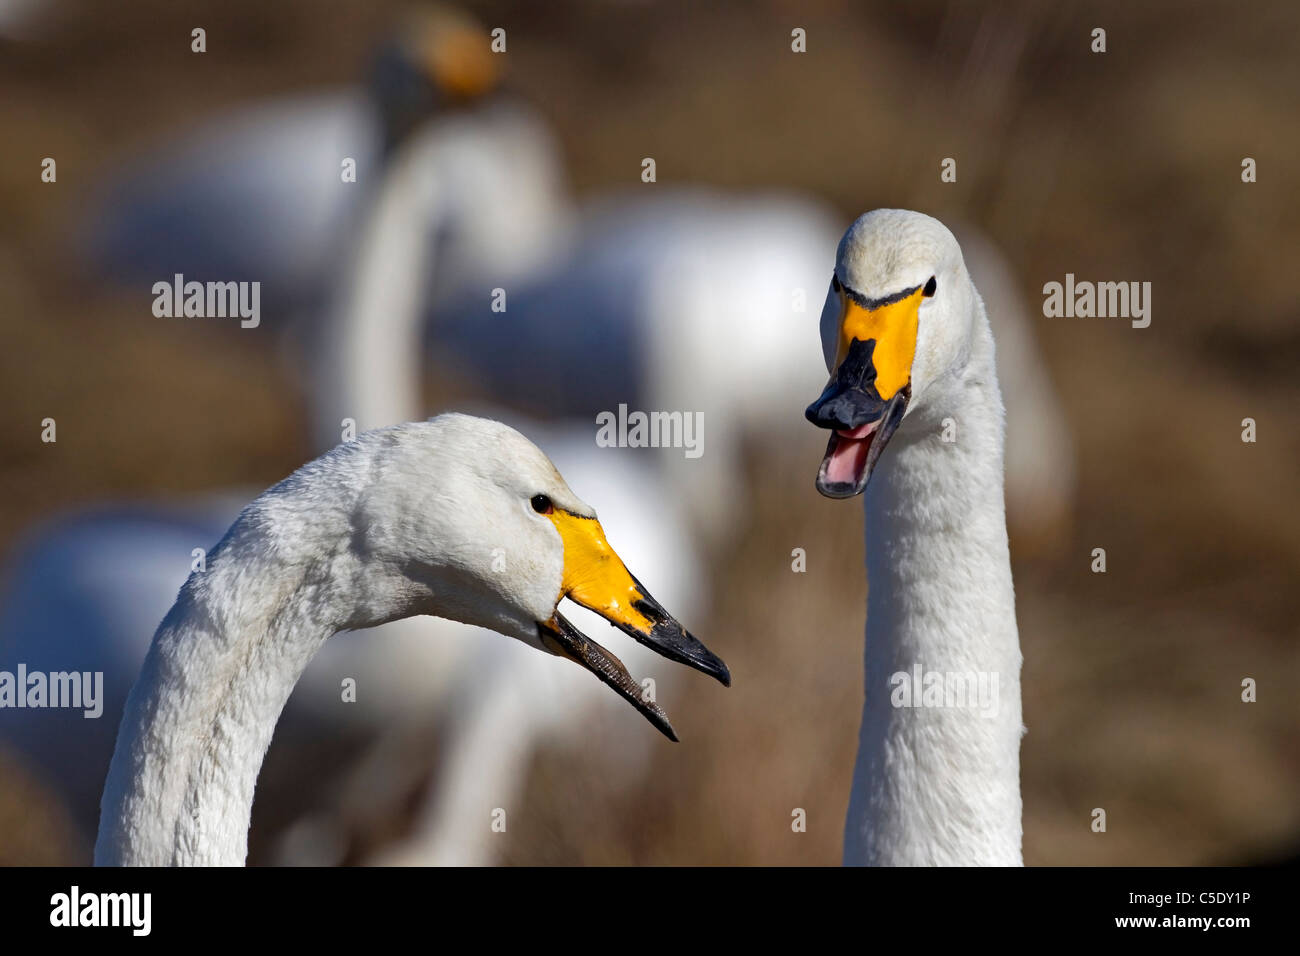 Close-up of two whooper swans in conversations against blurred once - Stock Image